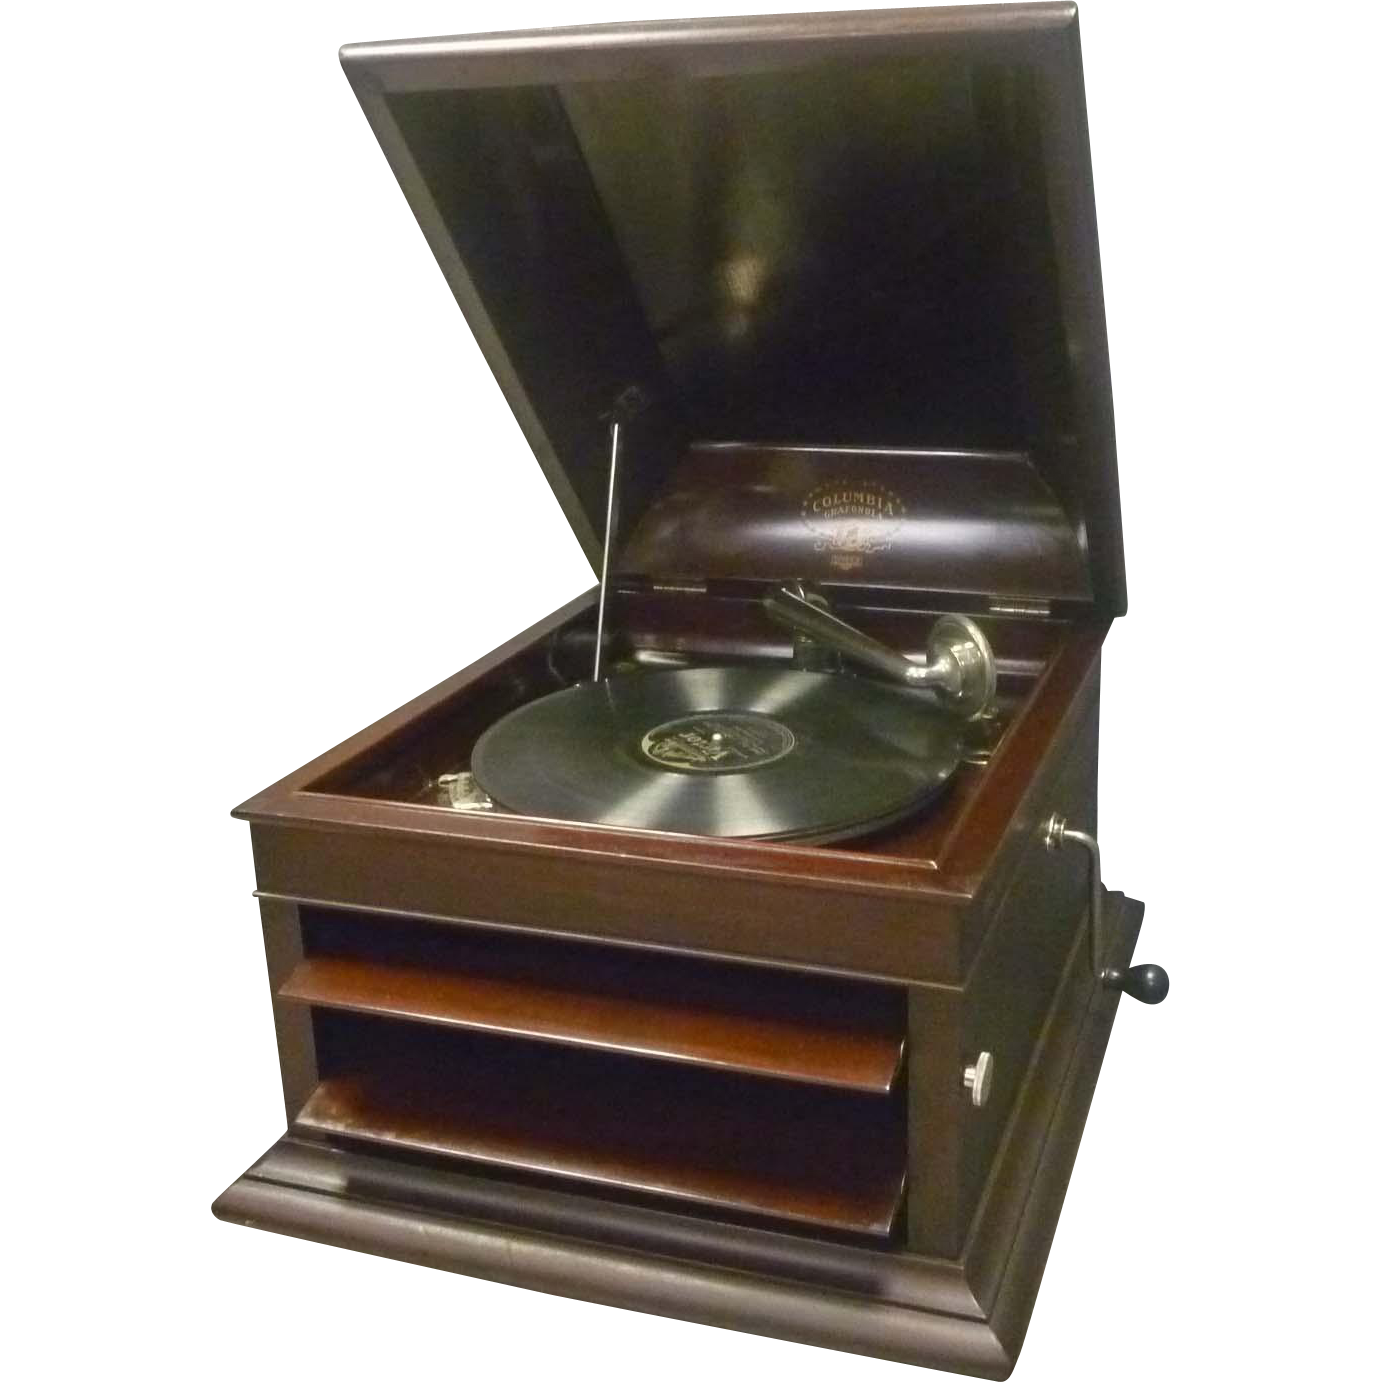 Columbia Grafonola Wind-up Record Player